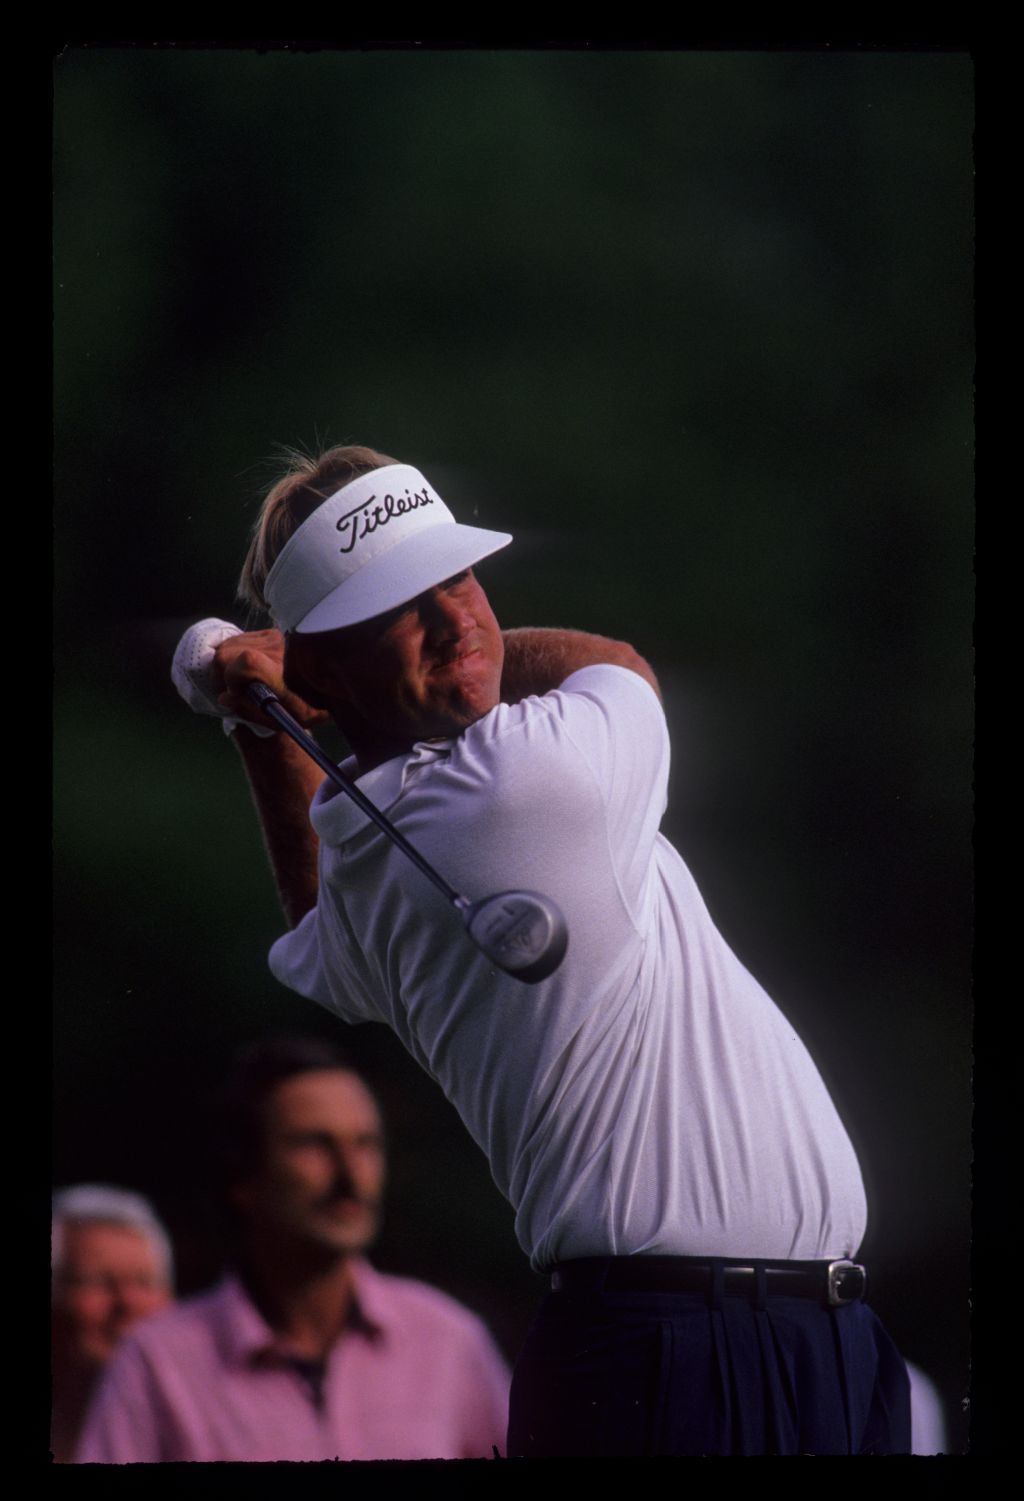 Steve Elkington following through on the tee during the 1991 Masters